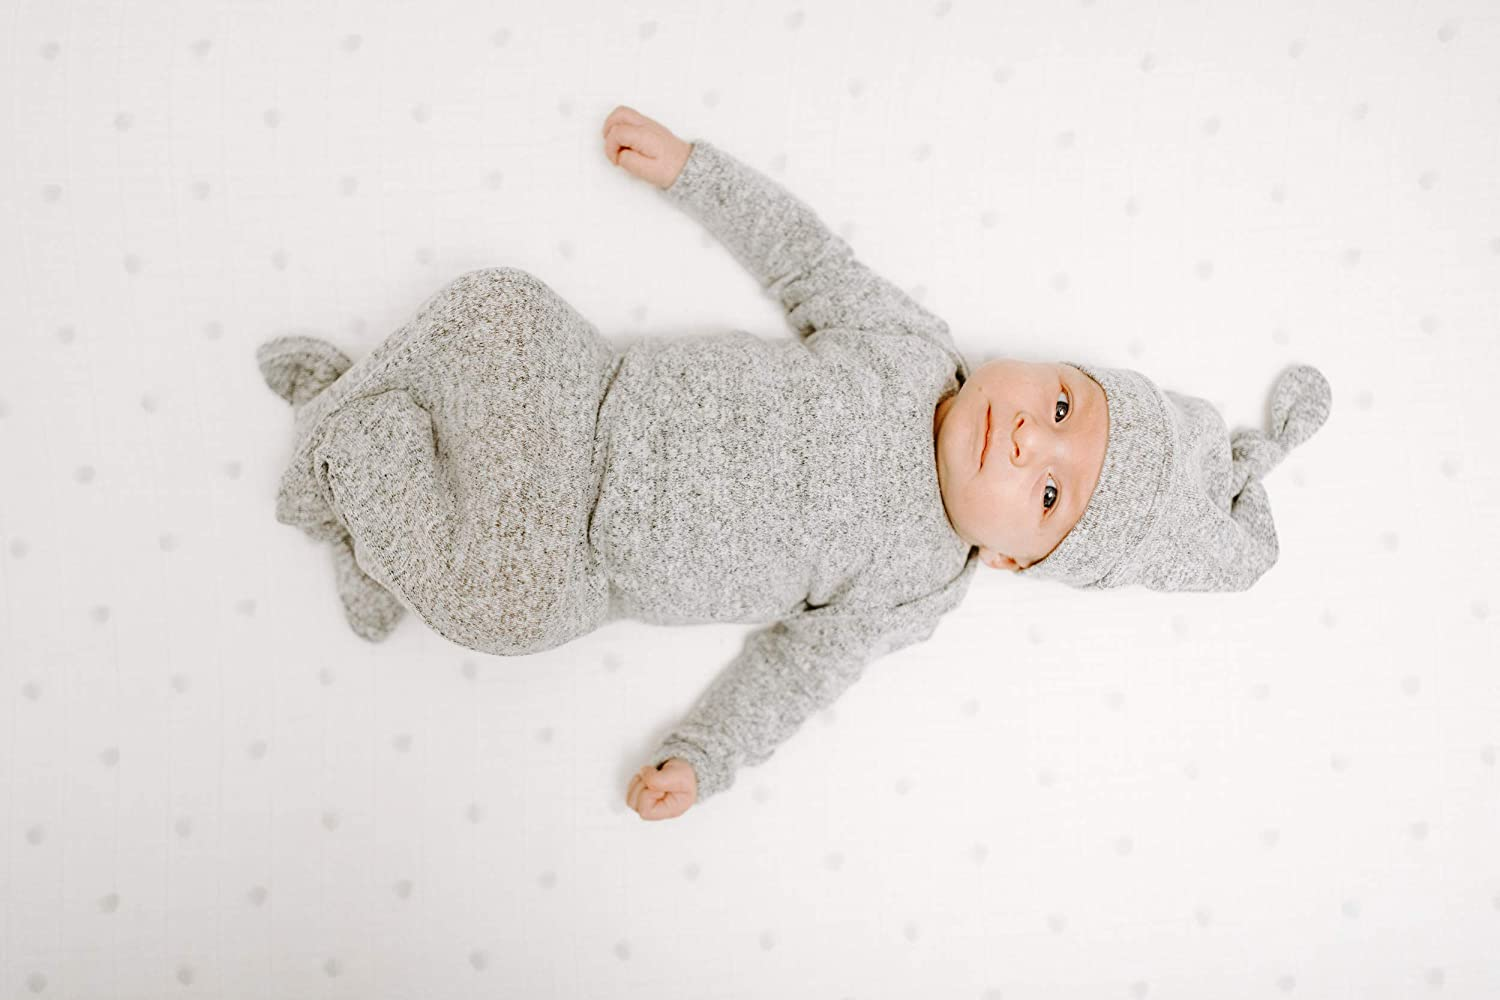 anais Snuggle Knit Knotted Newborn Baby Gown and Hat Set Super Soft and Stretchy Infant Gown with Mitten Cuffs aden Heather Grey 0-3 Months